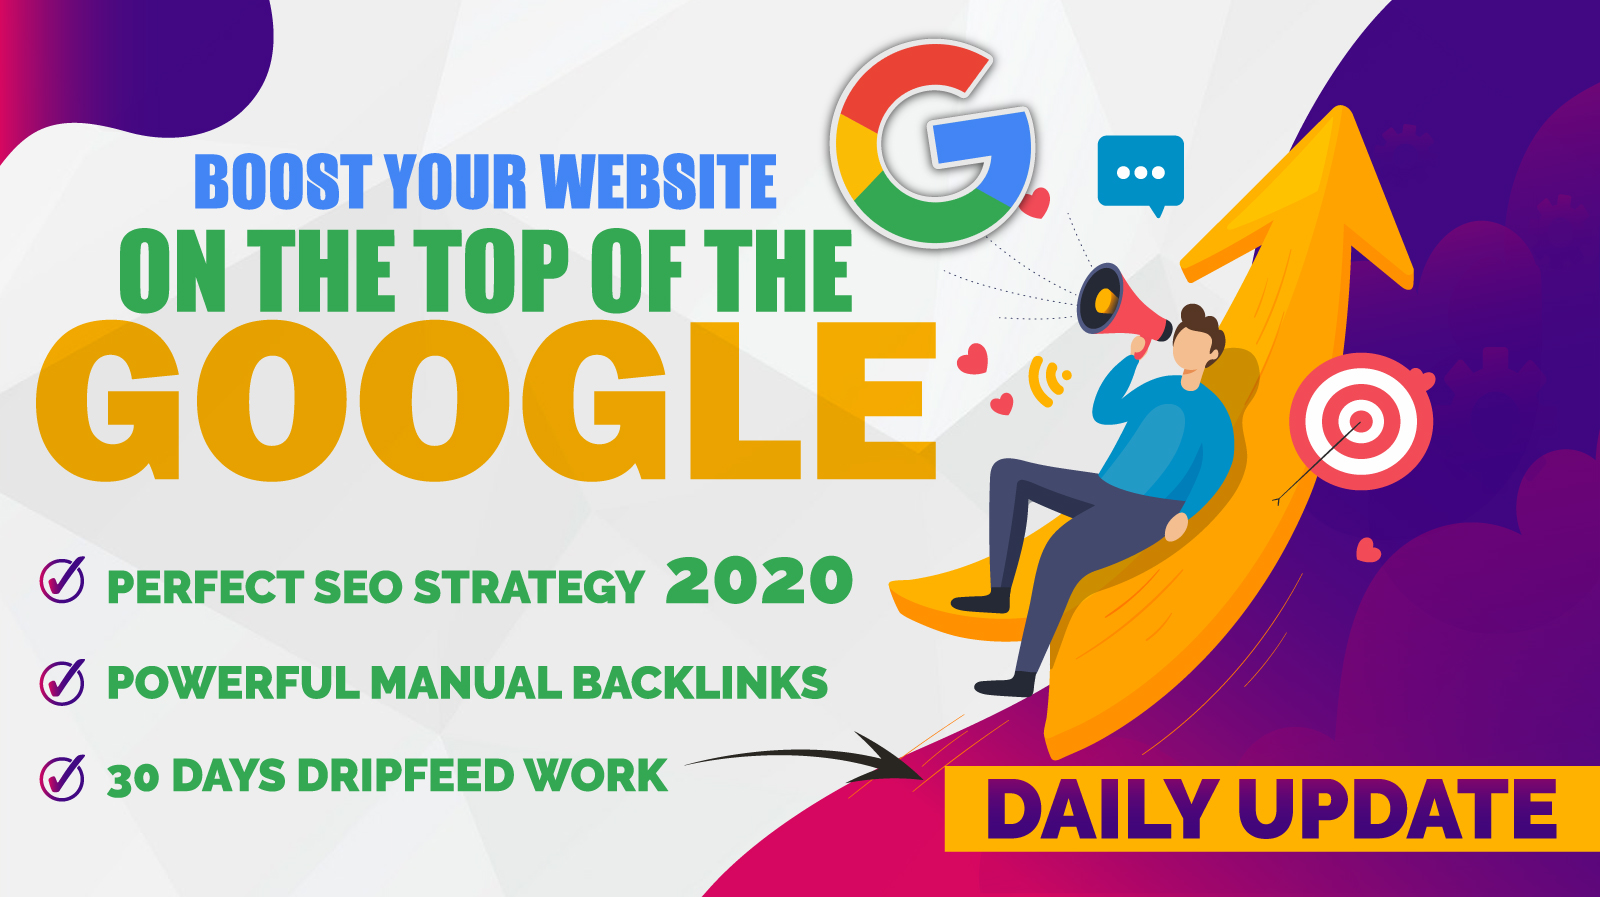 Boost your website on the 1 on the google with out 30 days dripfeed packages